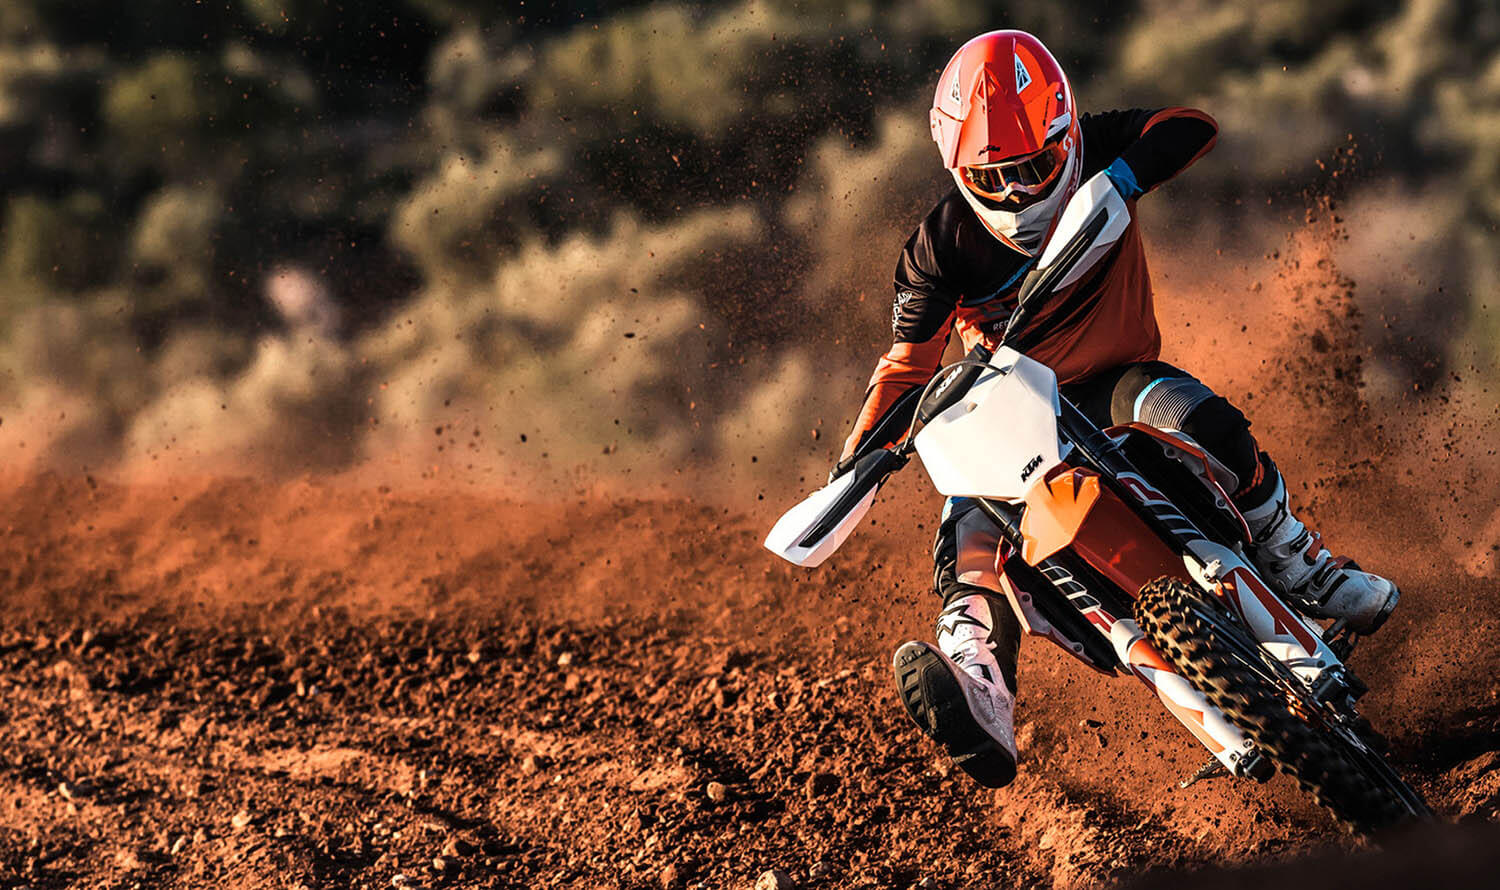 UltimateMotorbikes-HPB-KTM-Jan18-MR